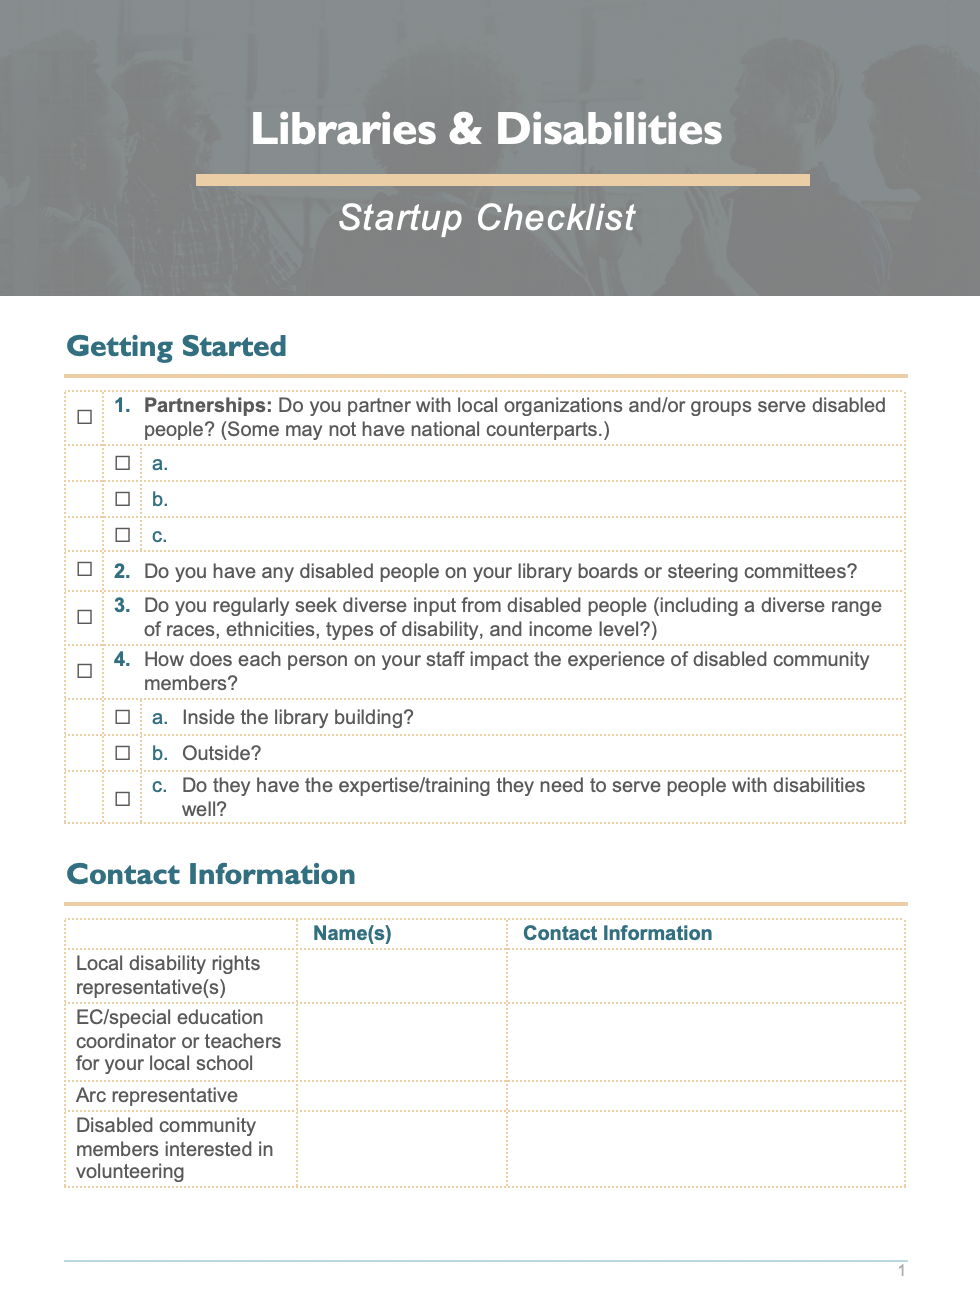 Screenshot of the Libraries & Disabilities Startup Checklist, linked to the accessible .docx file